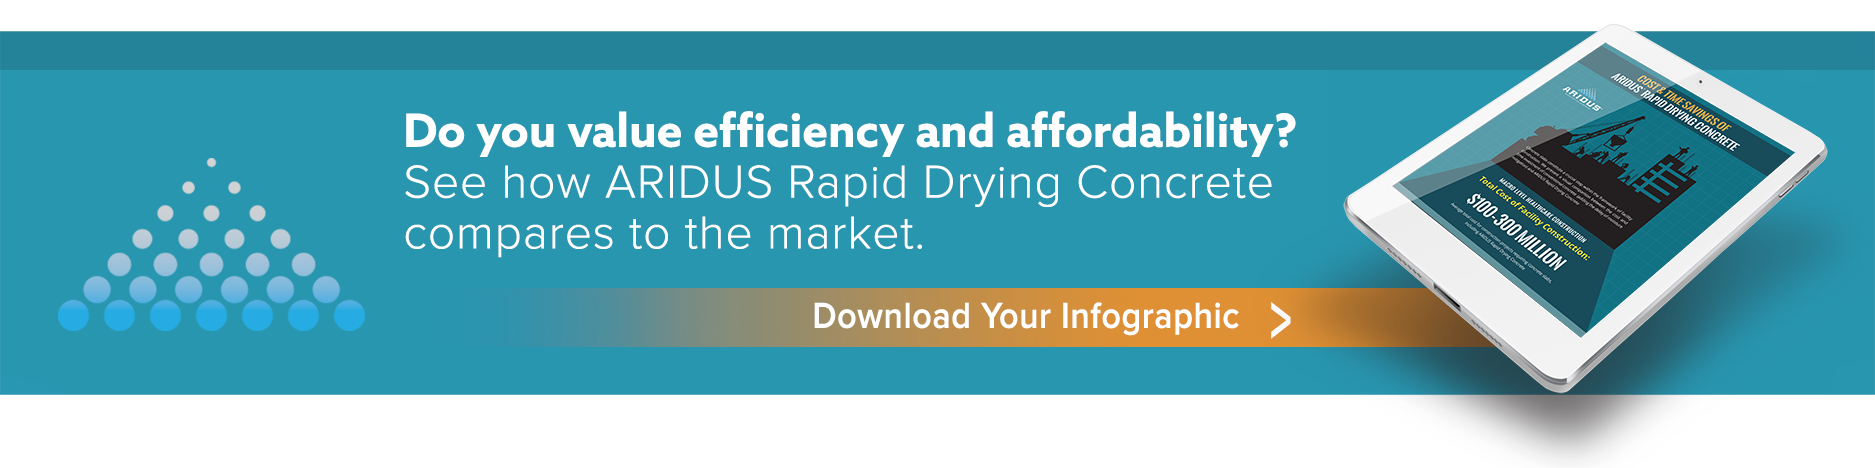 ARIDUS Rapid-Drying Concrete | Speed To Revenue